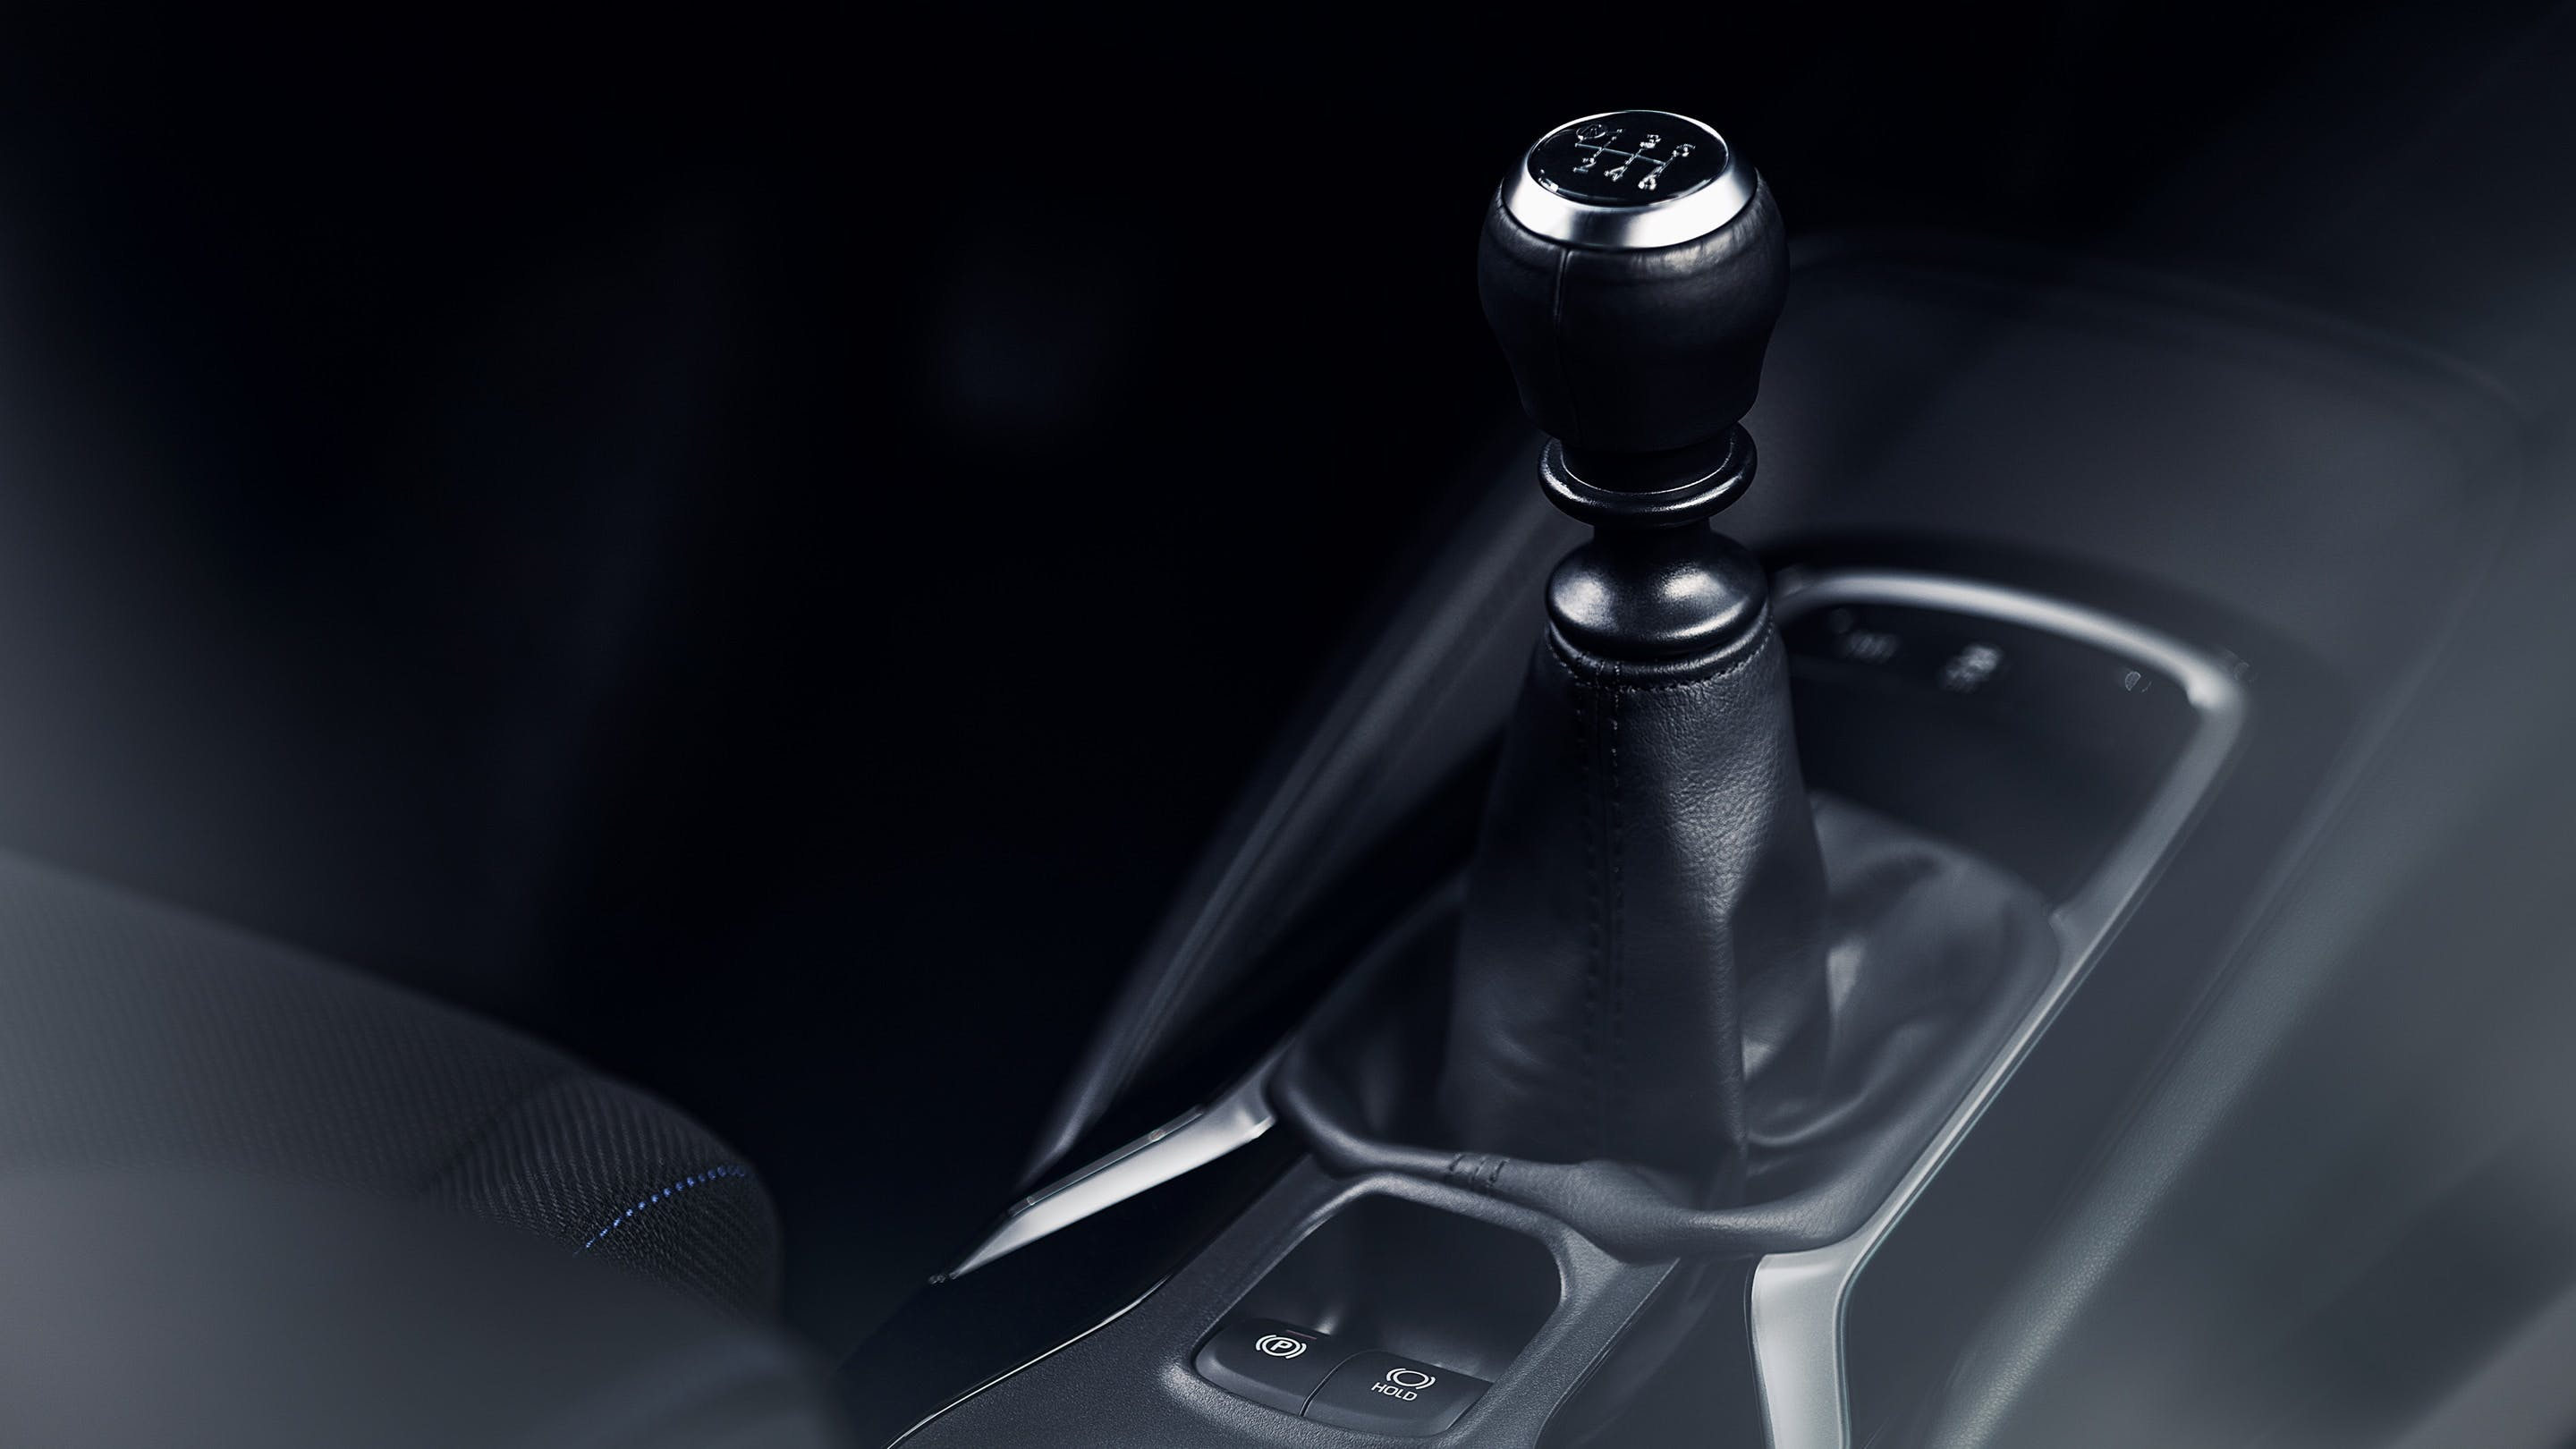 6-SPEED INTELLIGENT MANUAL TRANSMISSION (iMT)